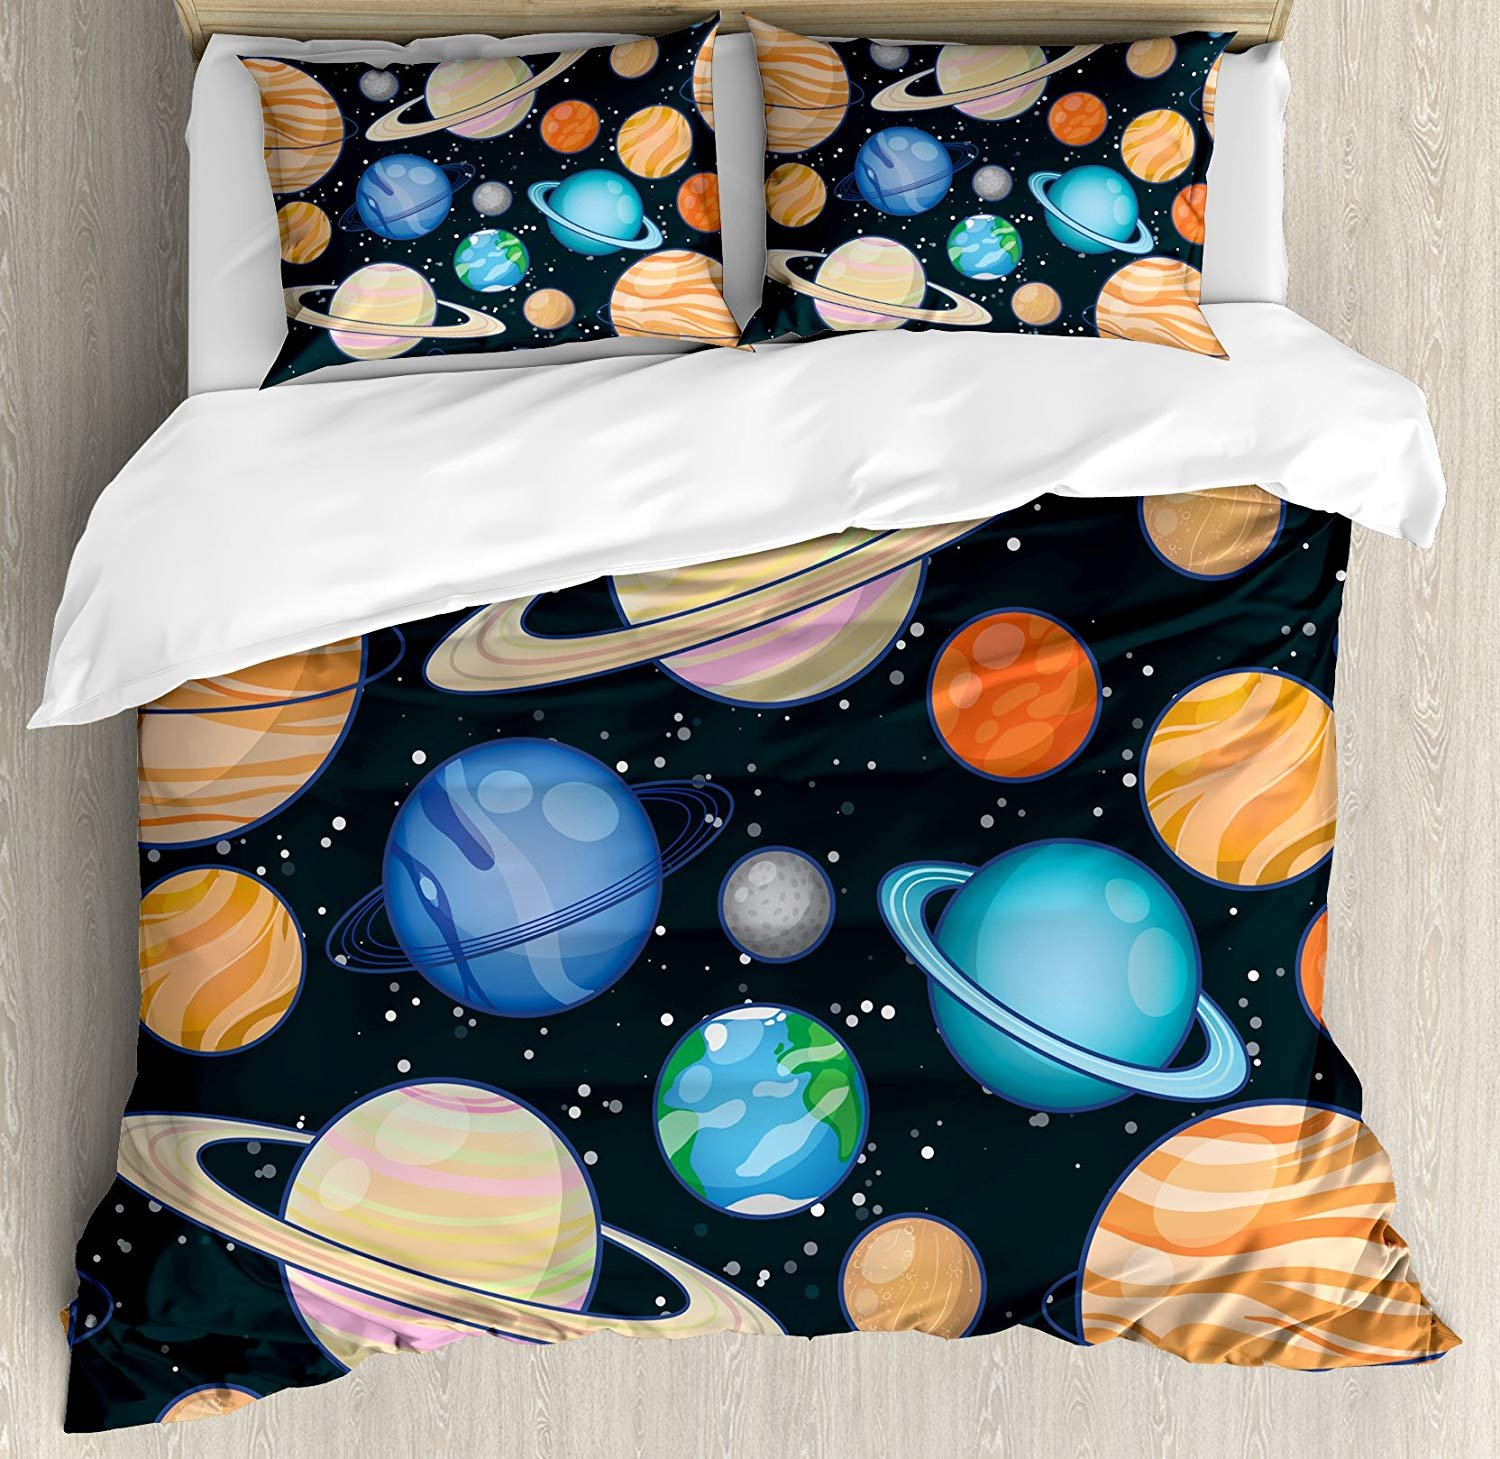 VCFUN Family Comfort Bed Sheet Galaxy Cute Galaxy Space Art Solar System Planets Mars Mercury Uranus Jupiter Venus Kids, 4 Piece Bedding Sets Duvet Cover Oversized Bedspread, Twin Size